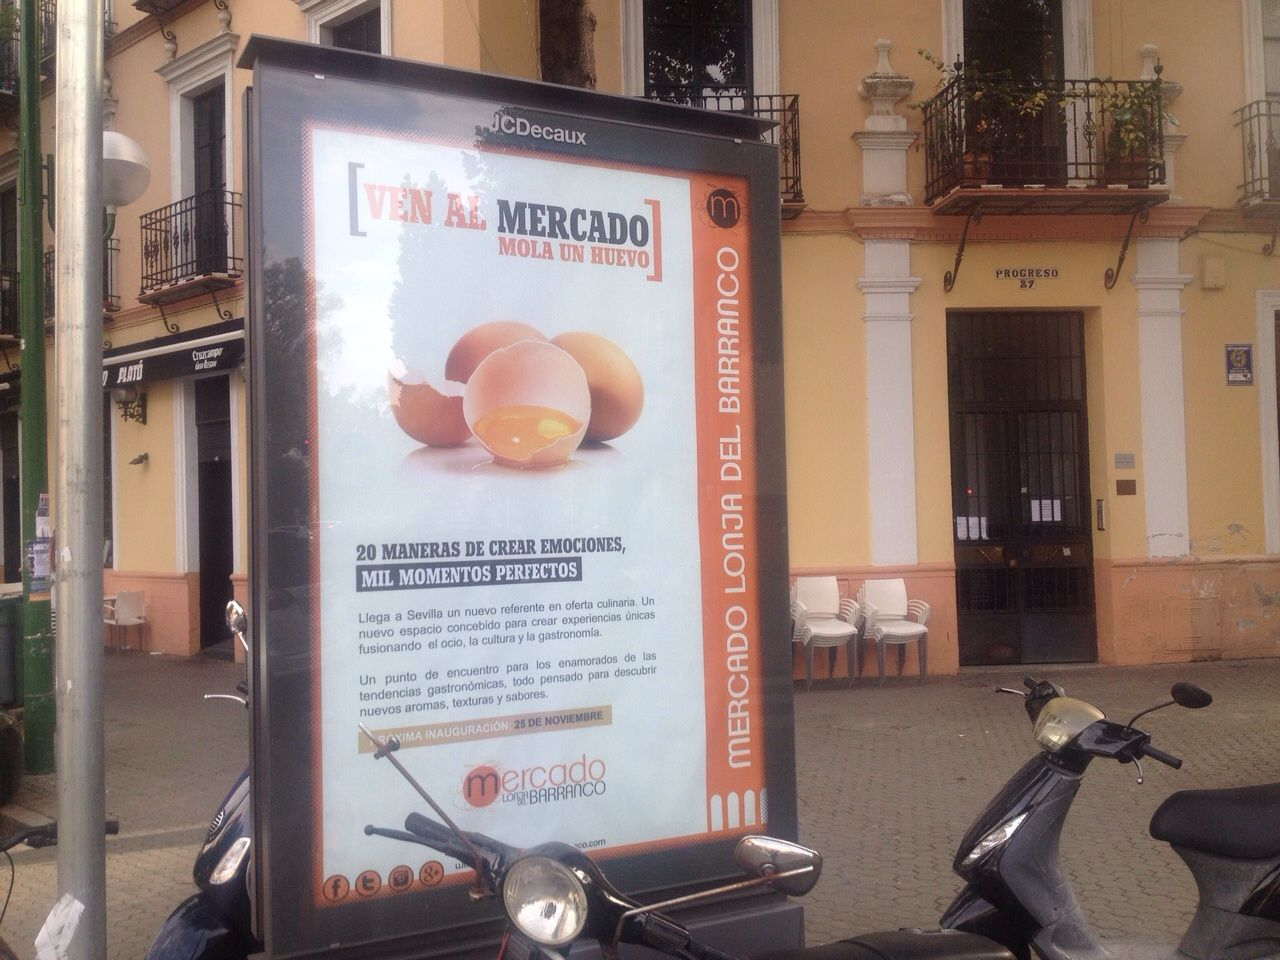 Campañas del Mercado Lonja del Barranco #mercadolonjadelbarranco #Campañas #Marketing